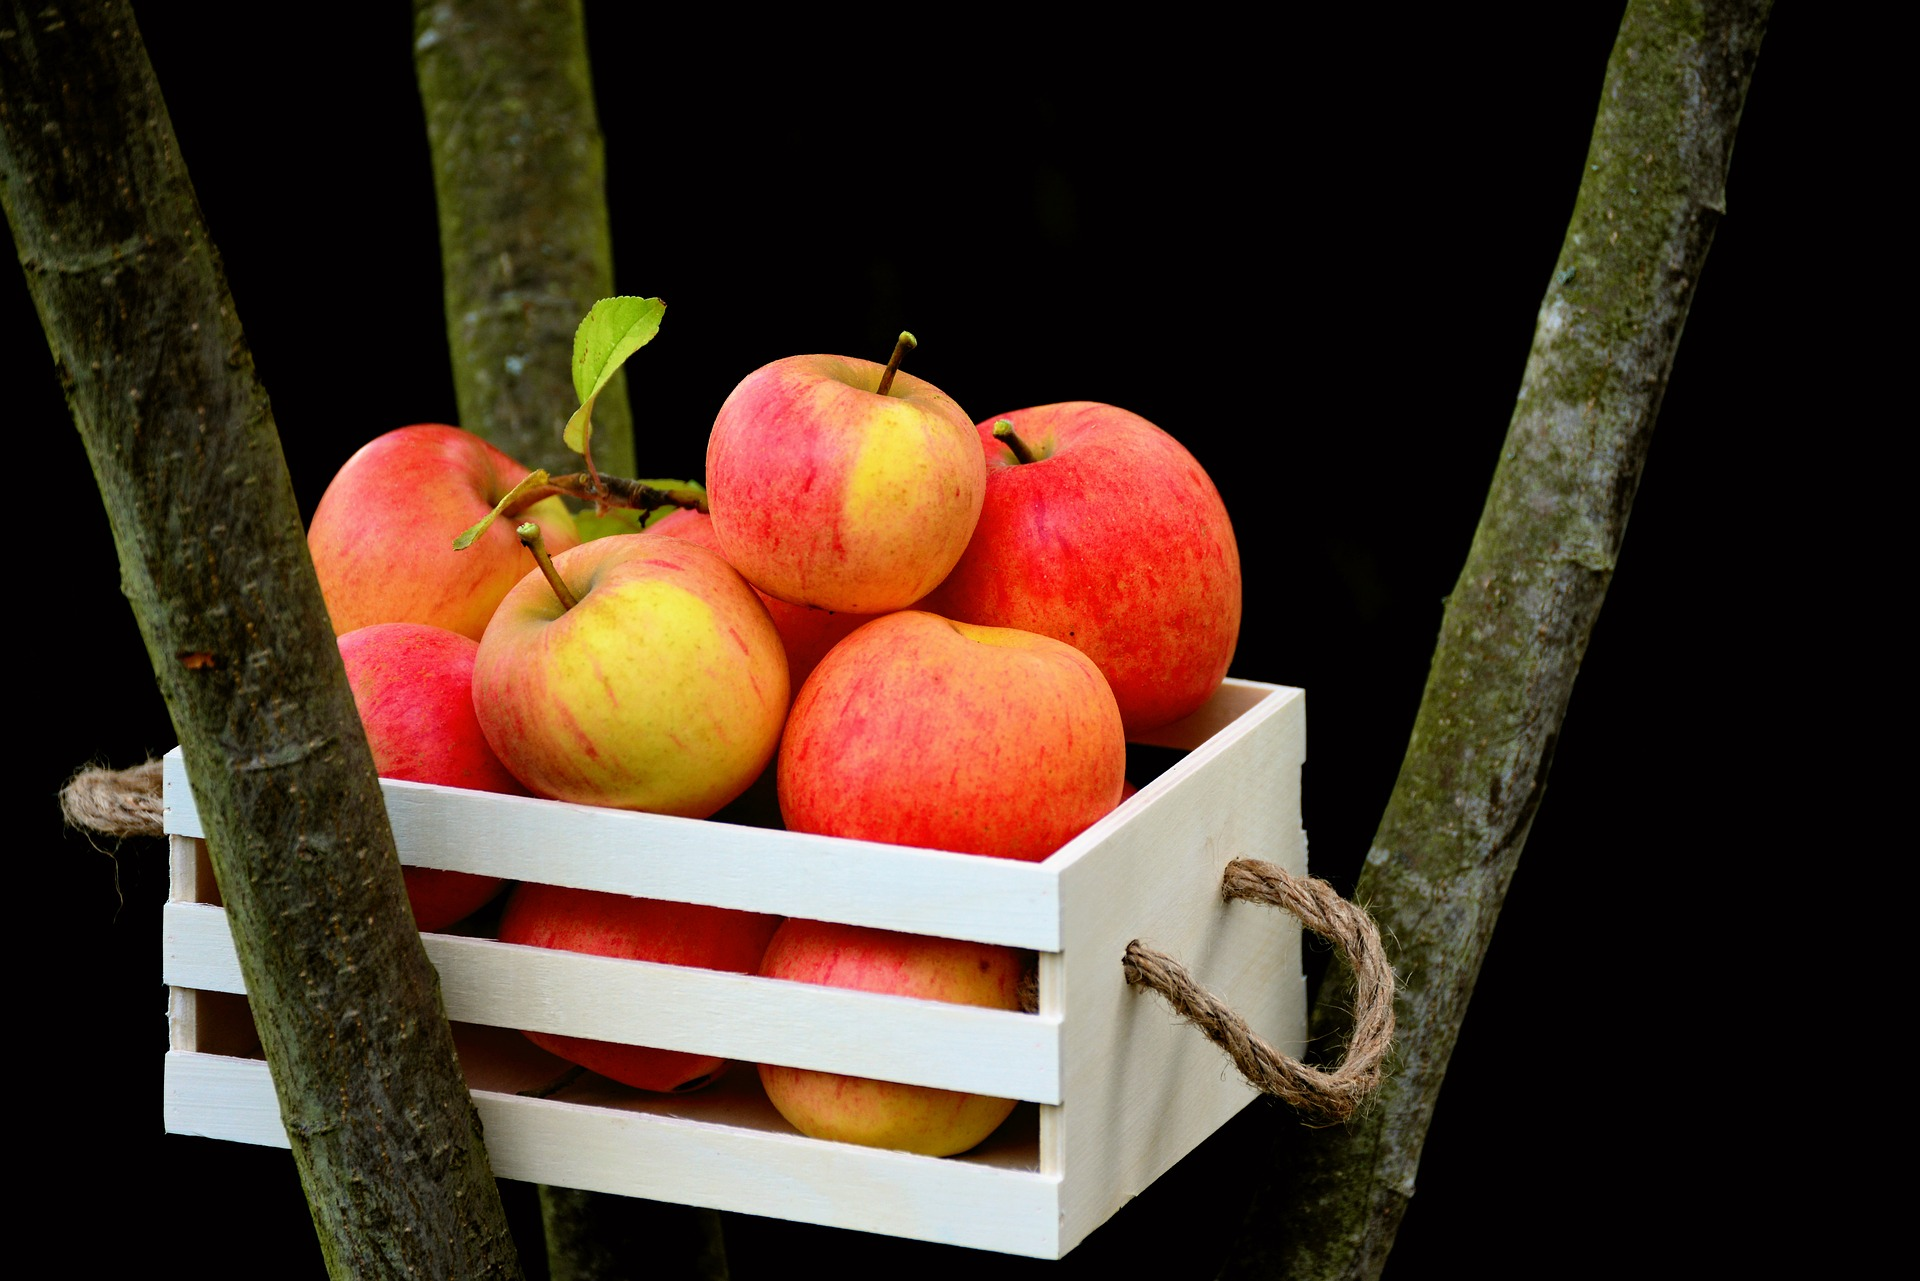 Best Fruits And Vegetable Organizer For Your Kitchen